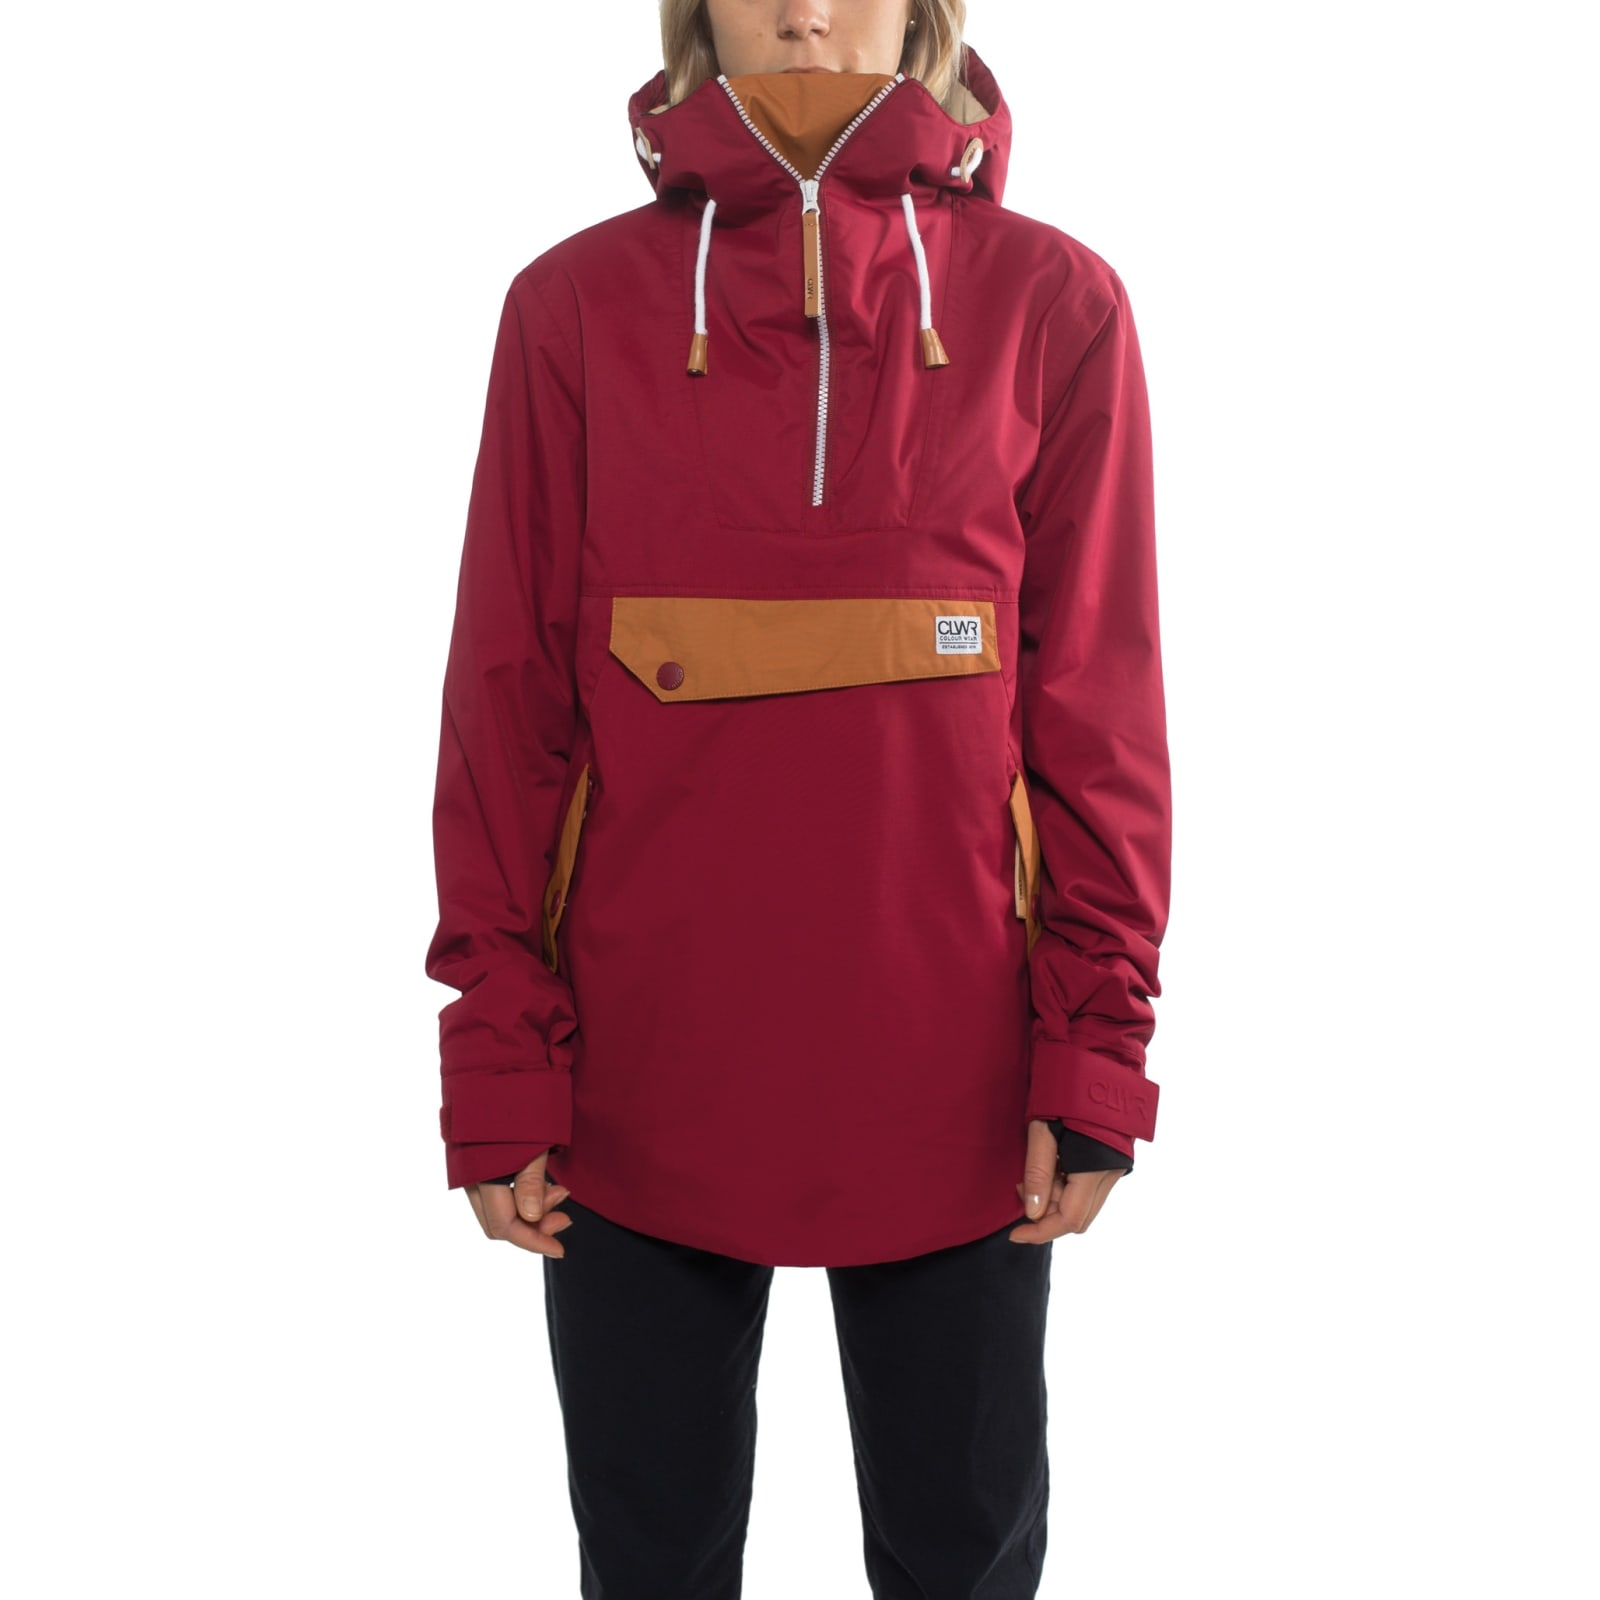 Buy WearColour Recruit Anorak from Outnorth dc28e97b4